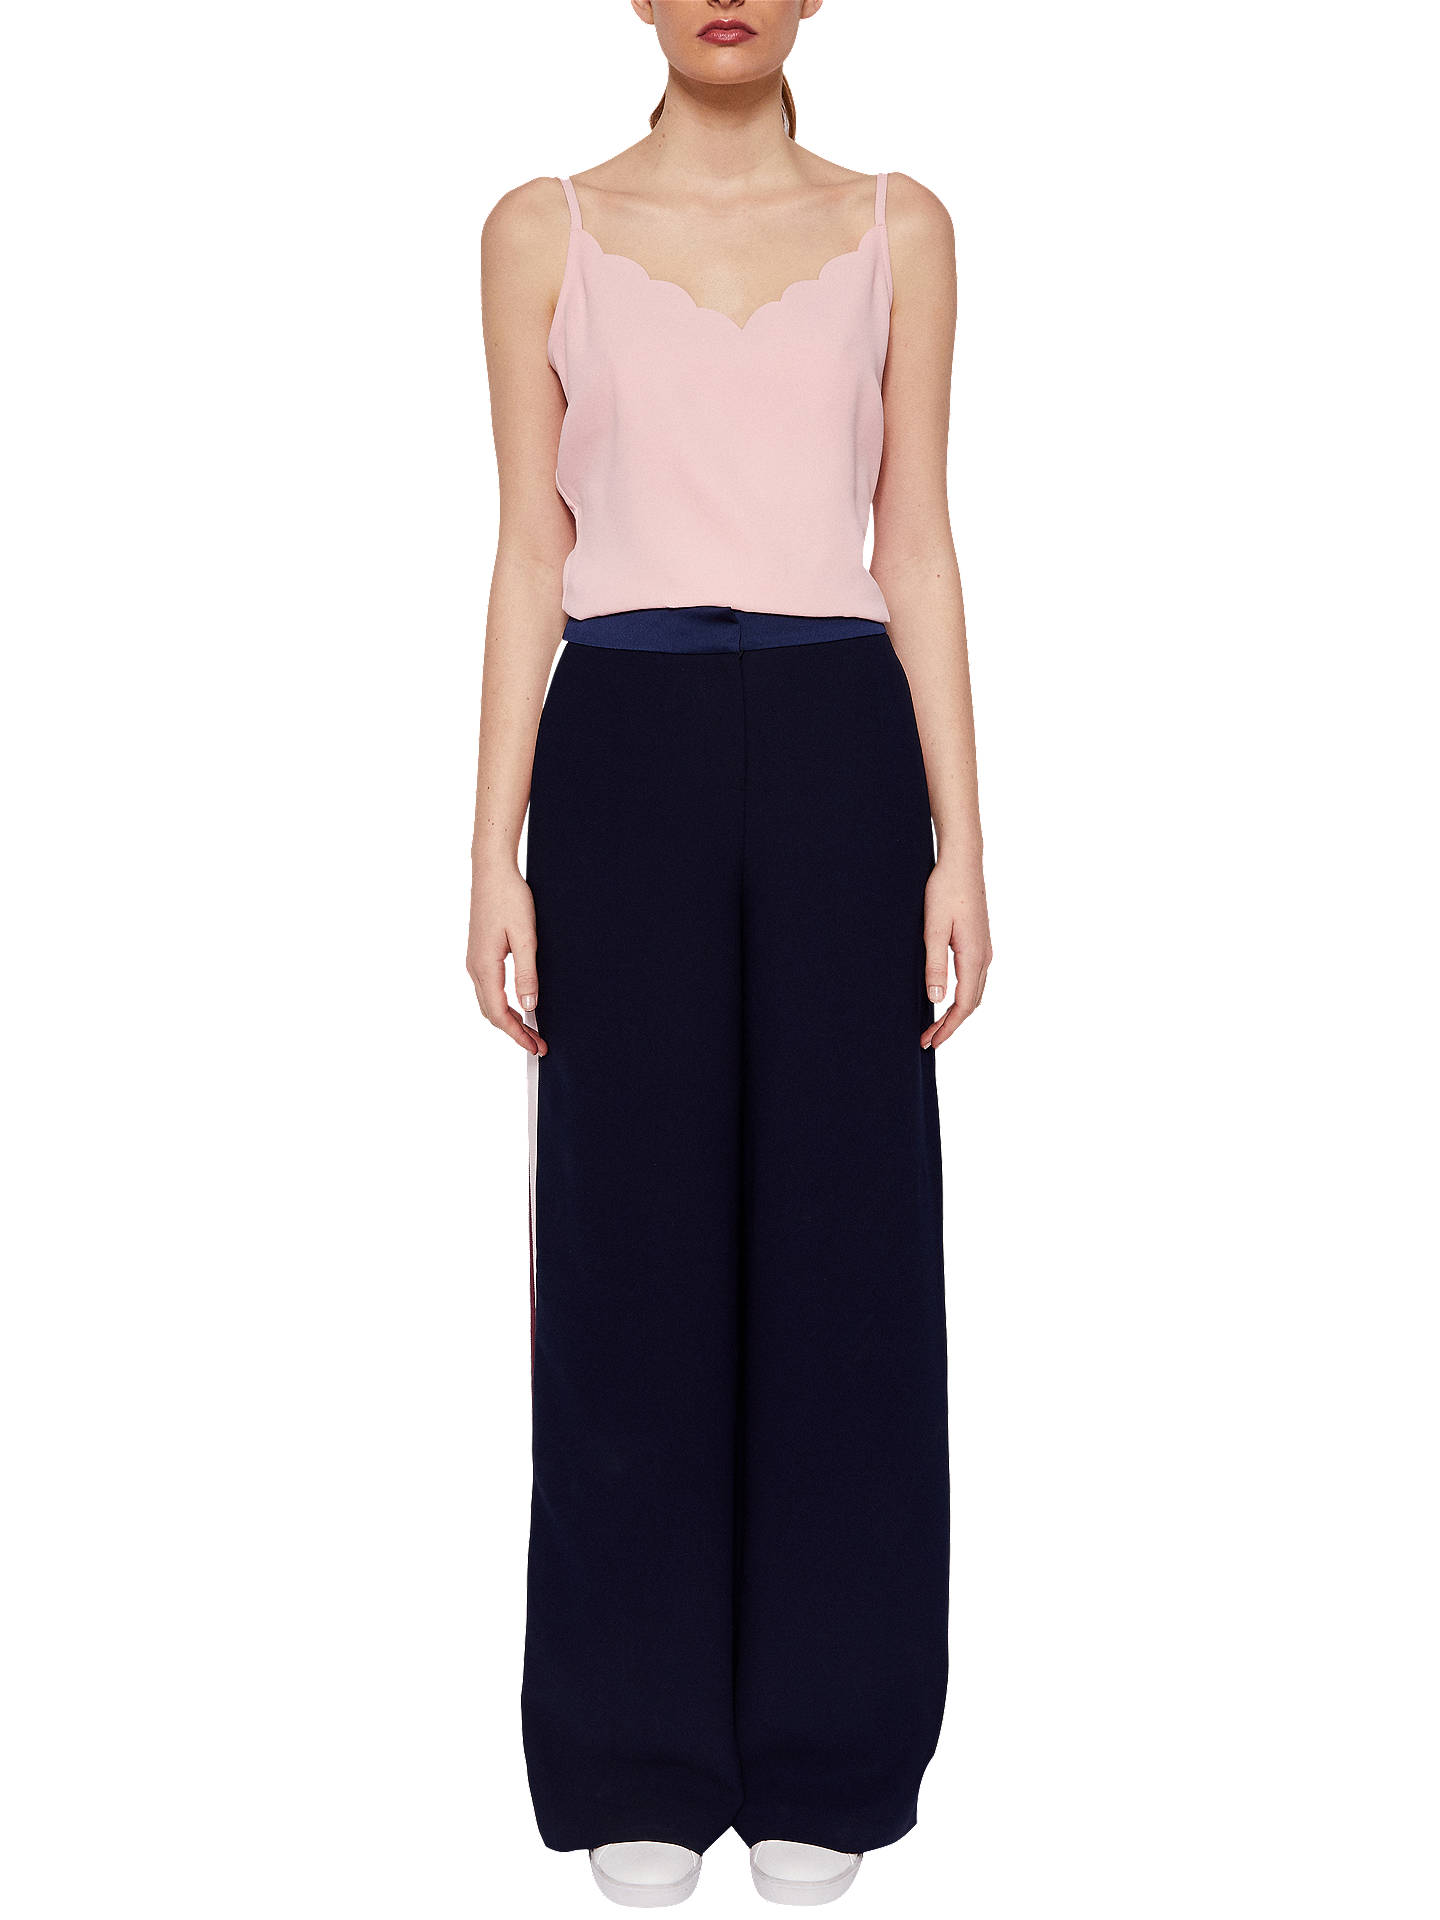 Buy Ted Baker Siina Scallop Neckline Camisole Top, Dusky Pink, L Online at johnlewis.com